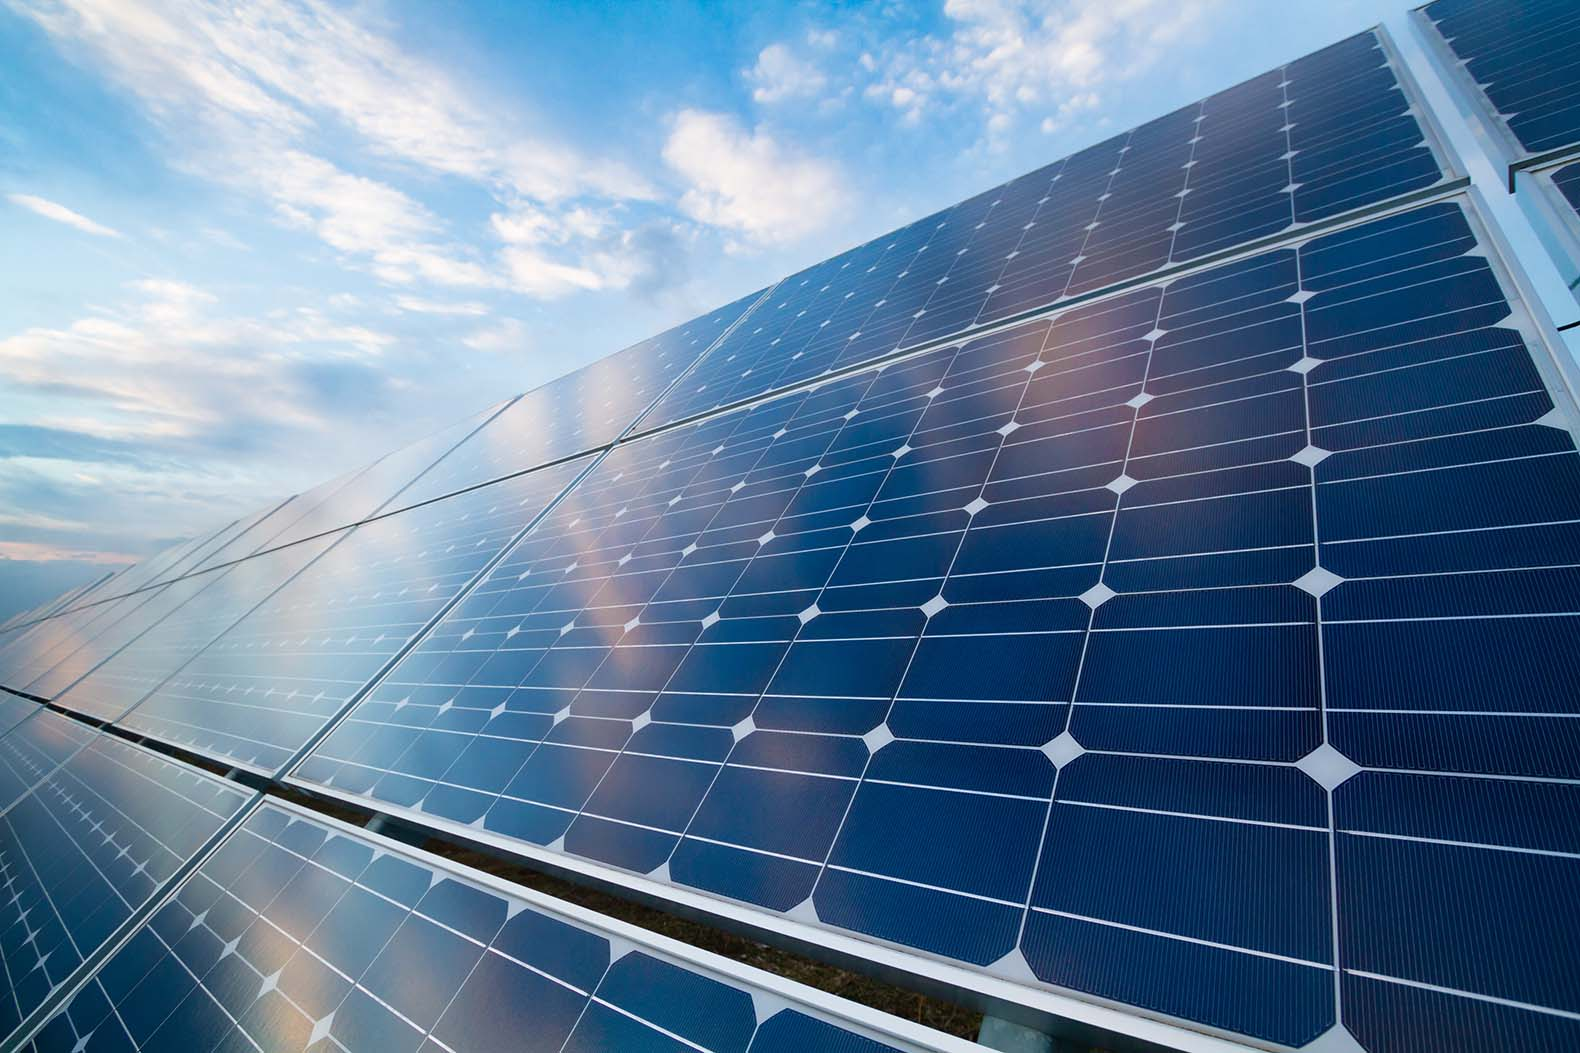 Masdar/MIT solar cell makes a grab for world record with 35% efficiency and lower cost